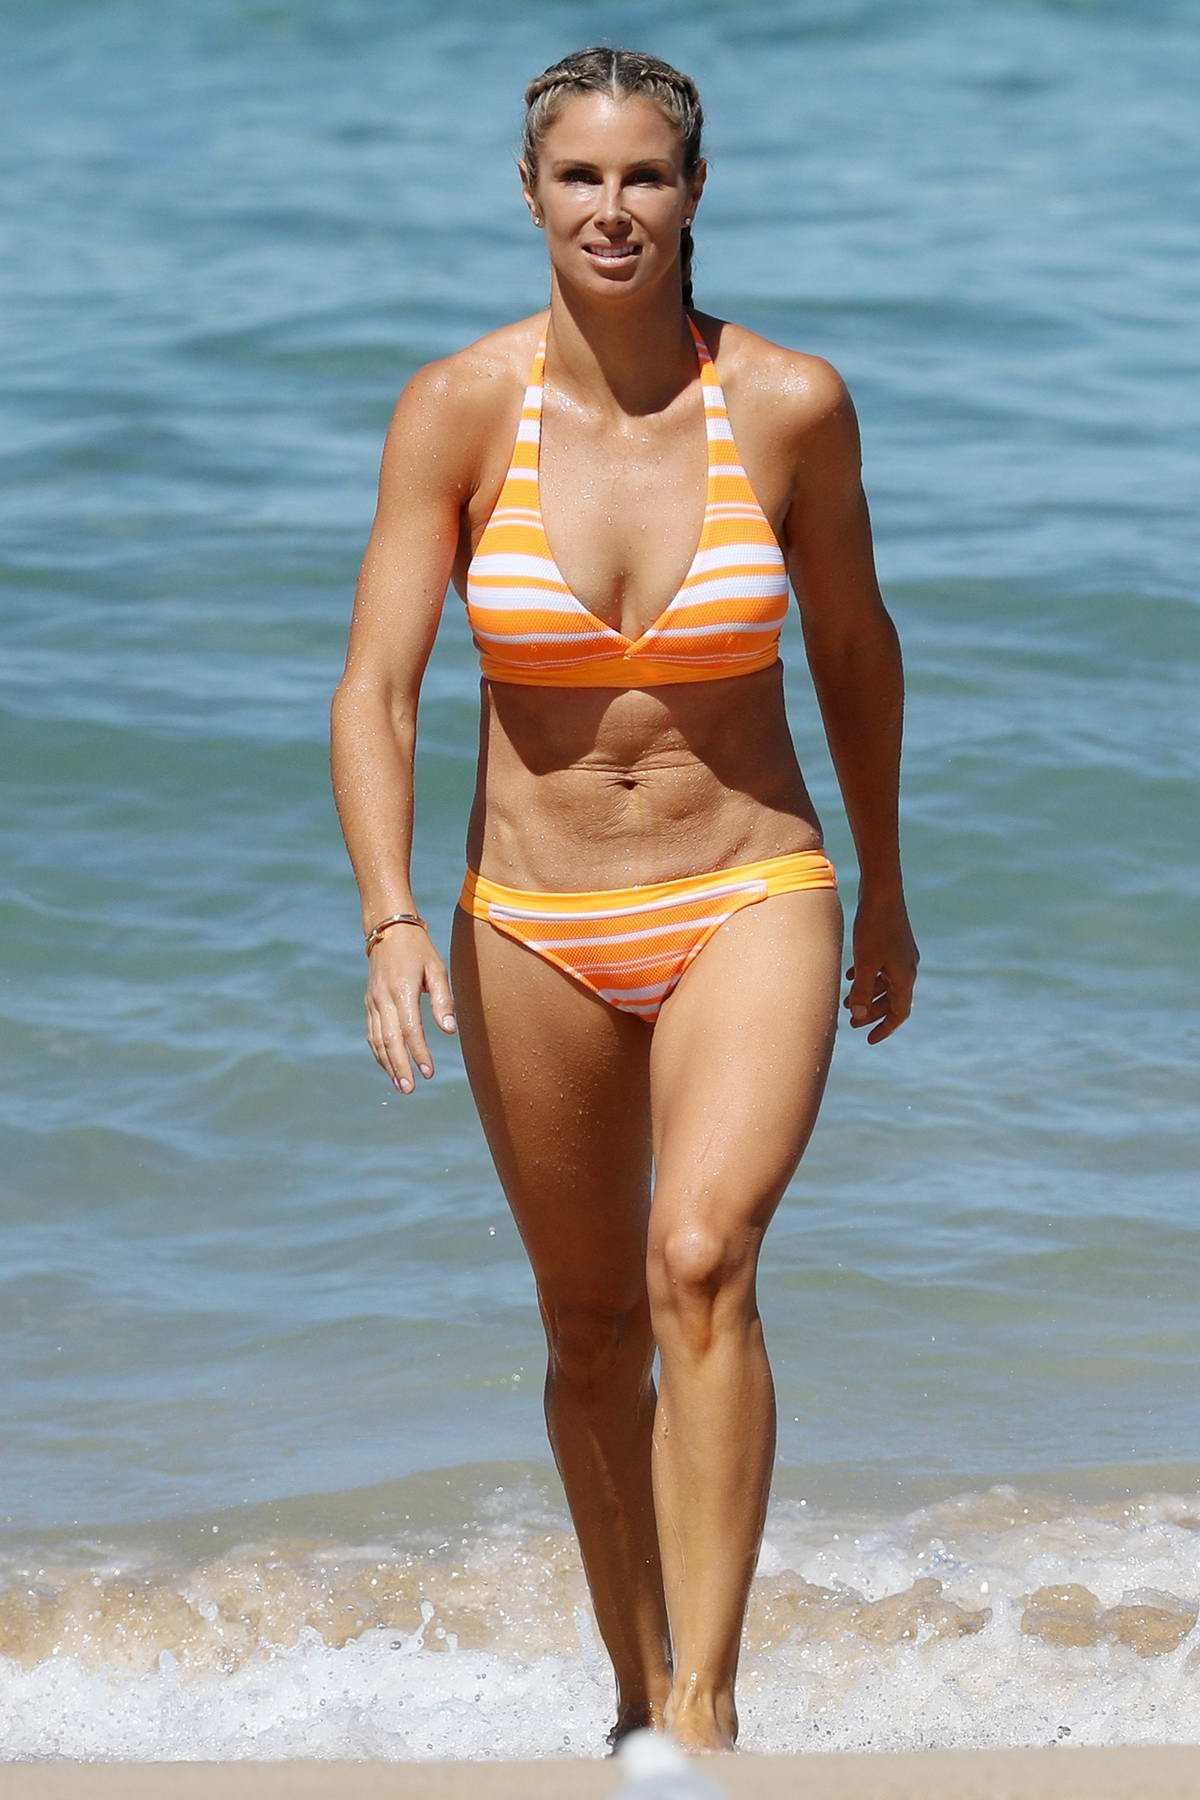 Ironwoman Candice Warner In A Bikini While Out On The Beach In Coogee Australia